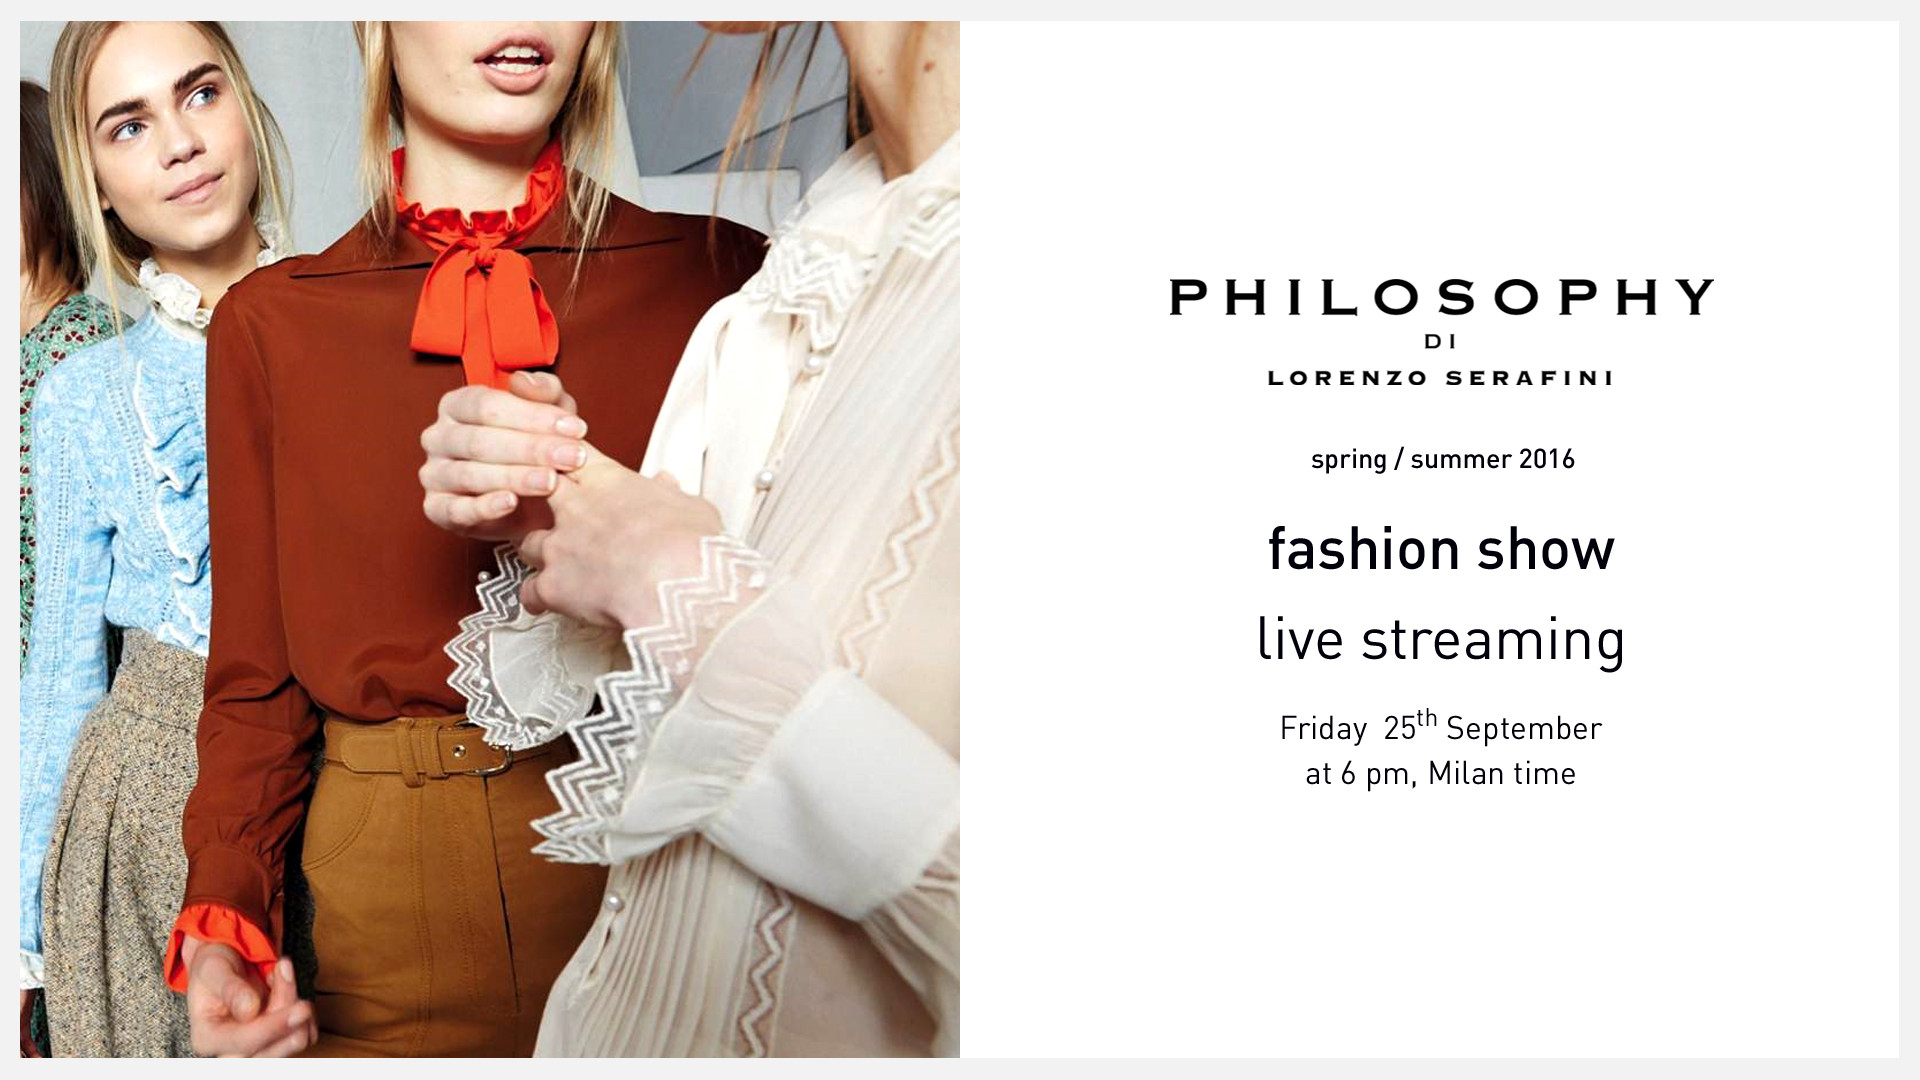 Philosophy di Lorenzo Serafini Spring Summer 2016 Women's Runway Show Live Streaming September 25th